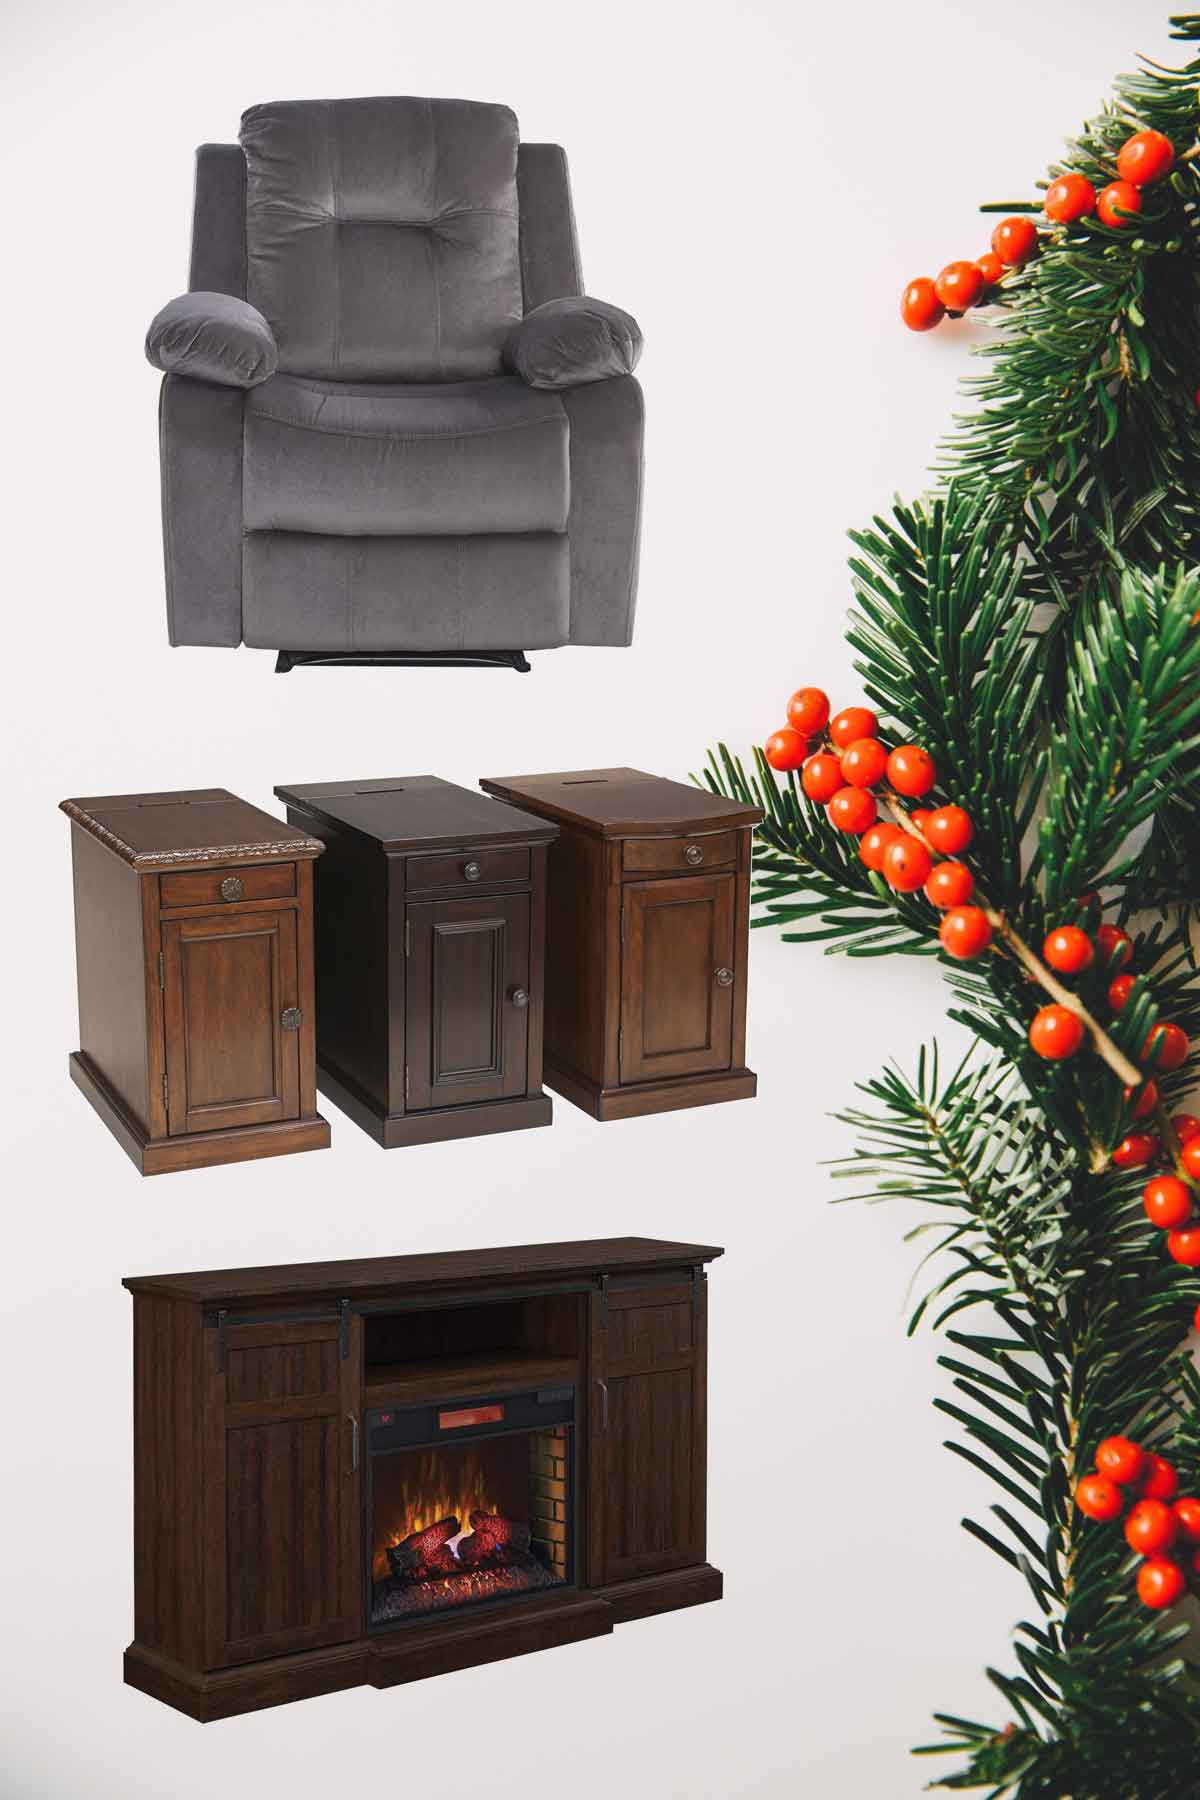 Top 10 Best Holiday Furniture Gift Ideas for 2020 (Fun Present Ideas For The Holiday Season)